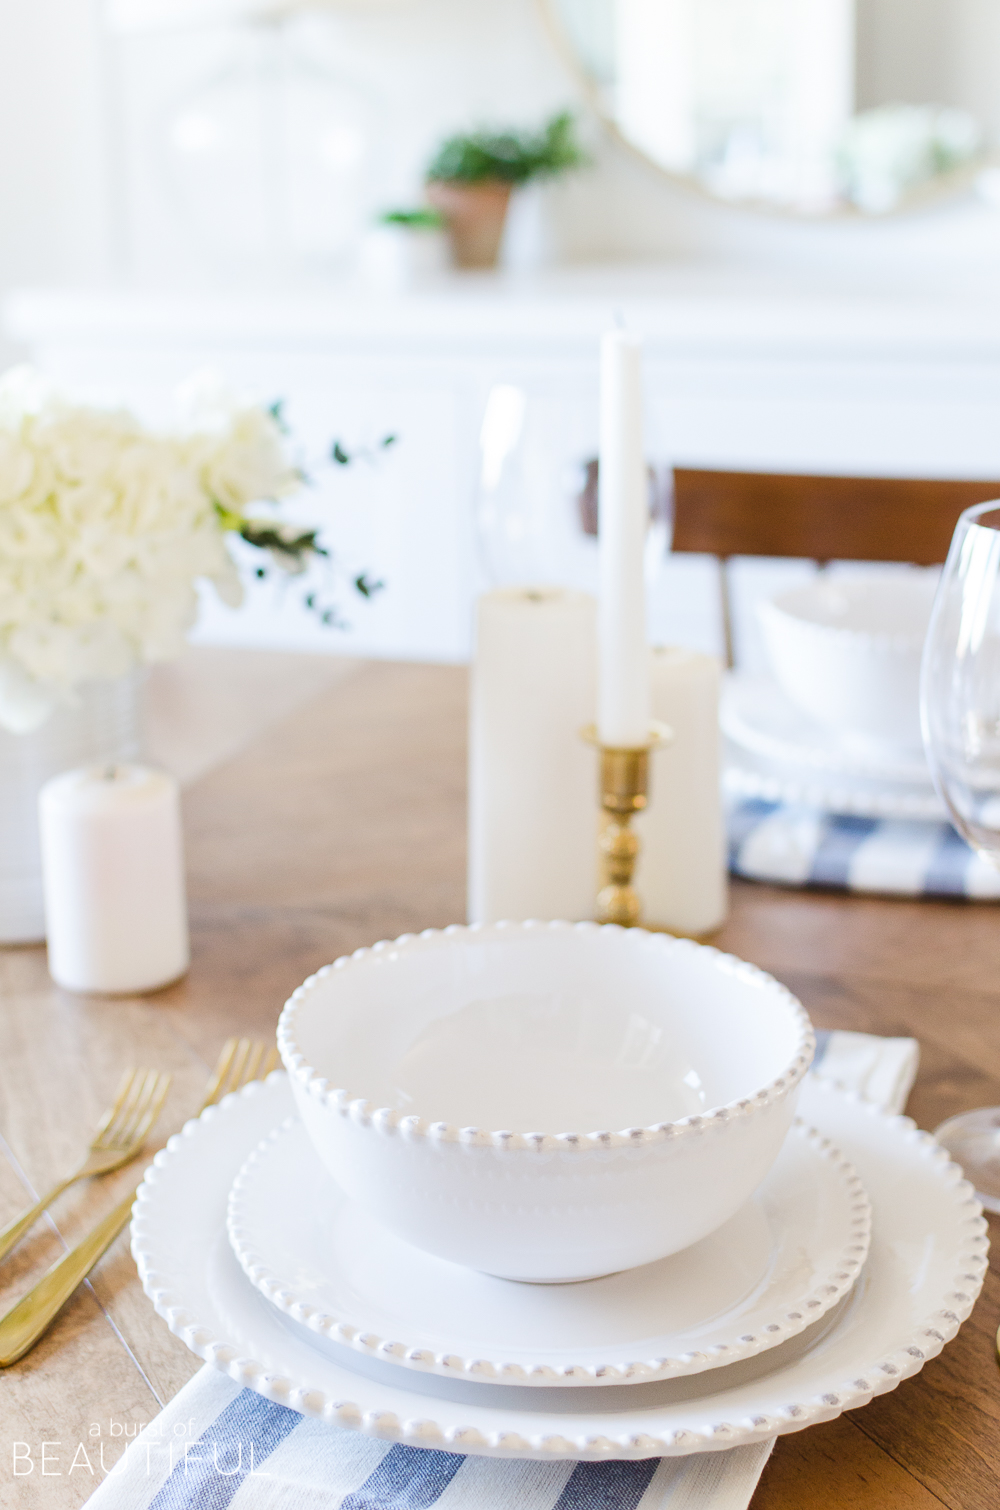 A simple spring tablescape set in a classic blueand white color palette with a centerpiece of white hydrangeas and crocuses leads to easy spring entertaining.